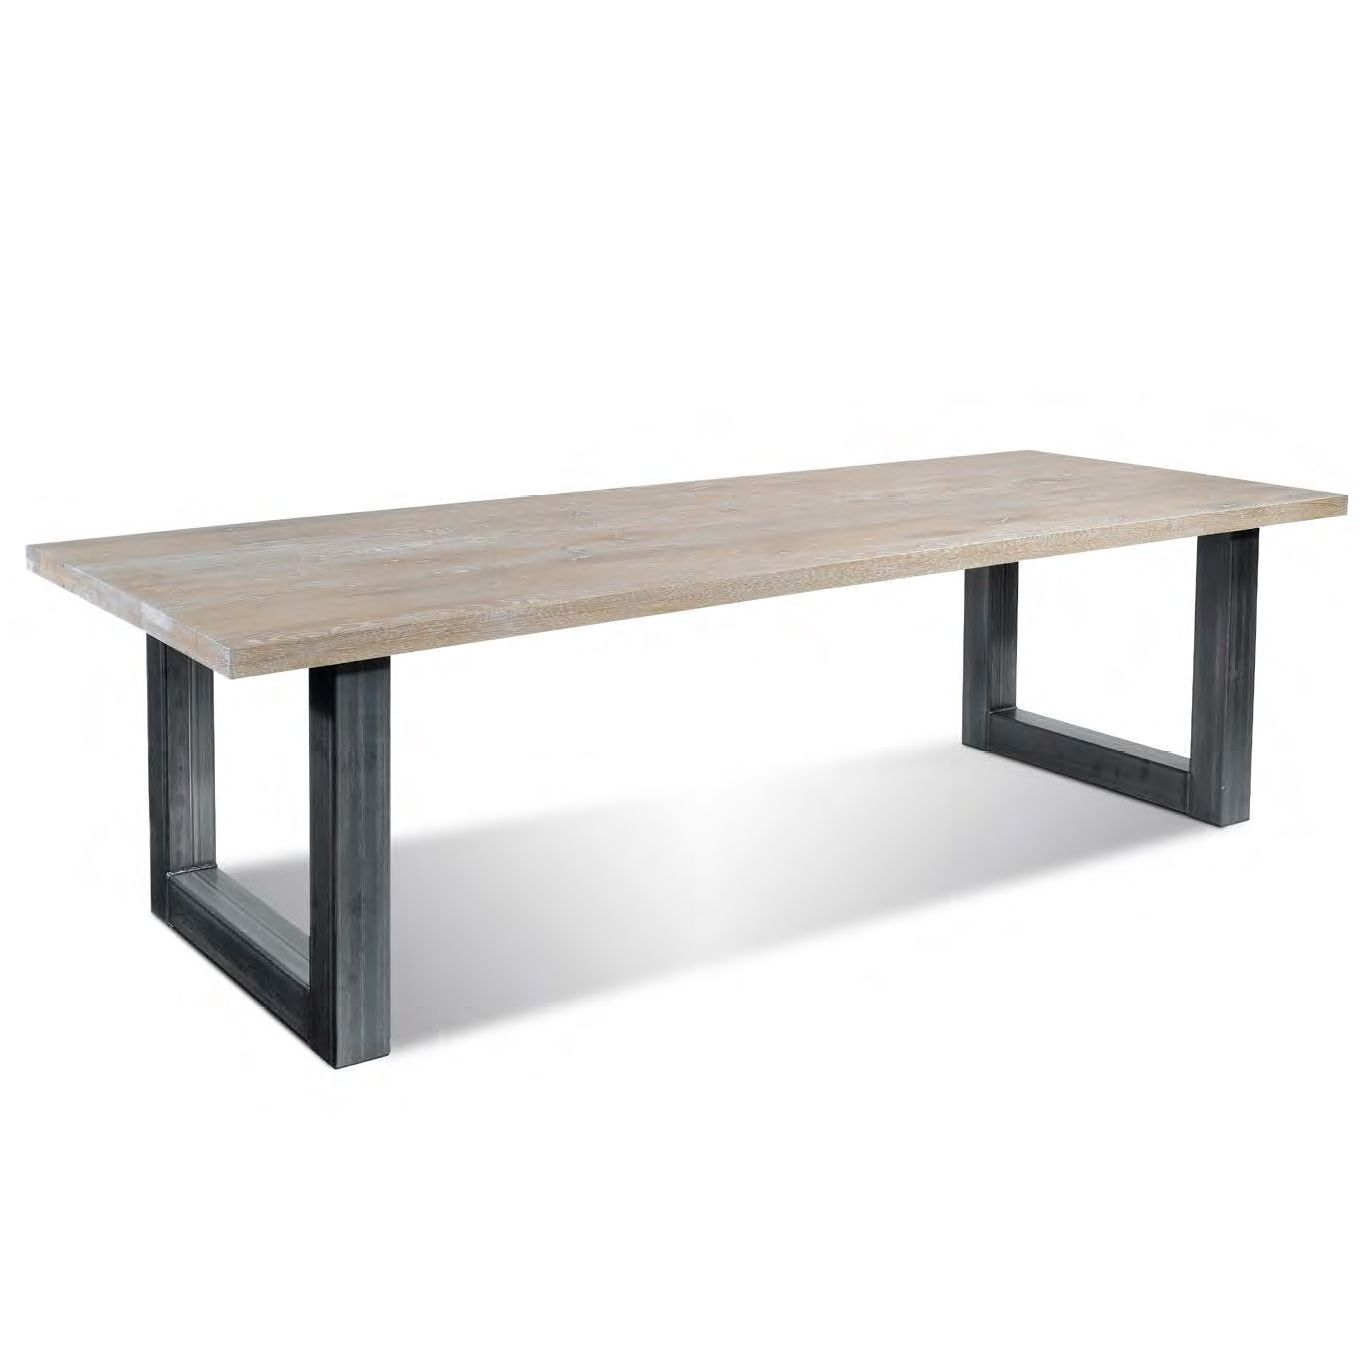 Decoration Ideas, : Dining Table Design Idea With Aged White Wooden  Tabletop Combine With Black